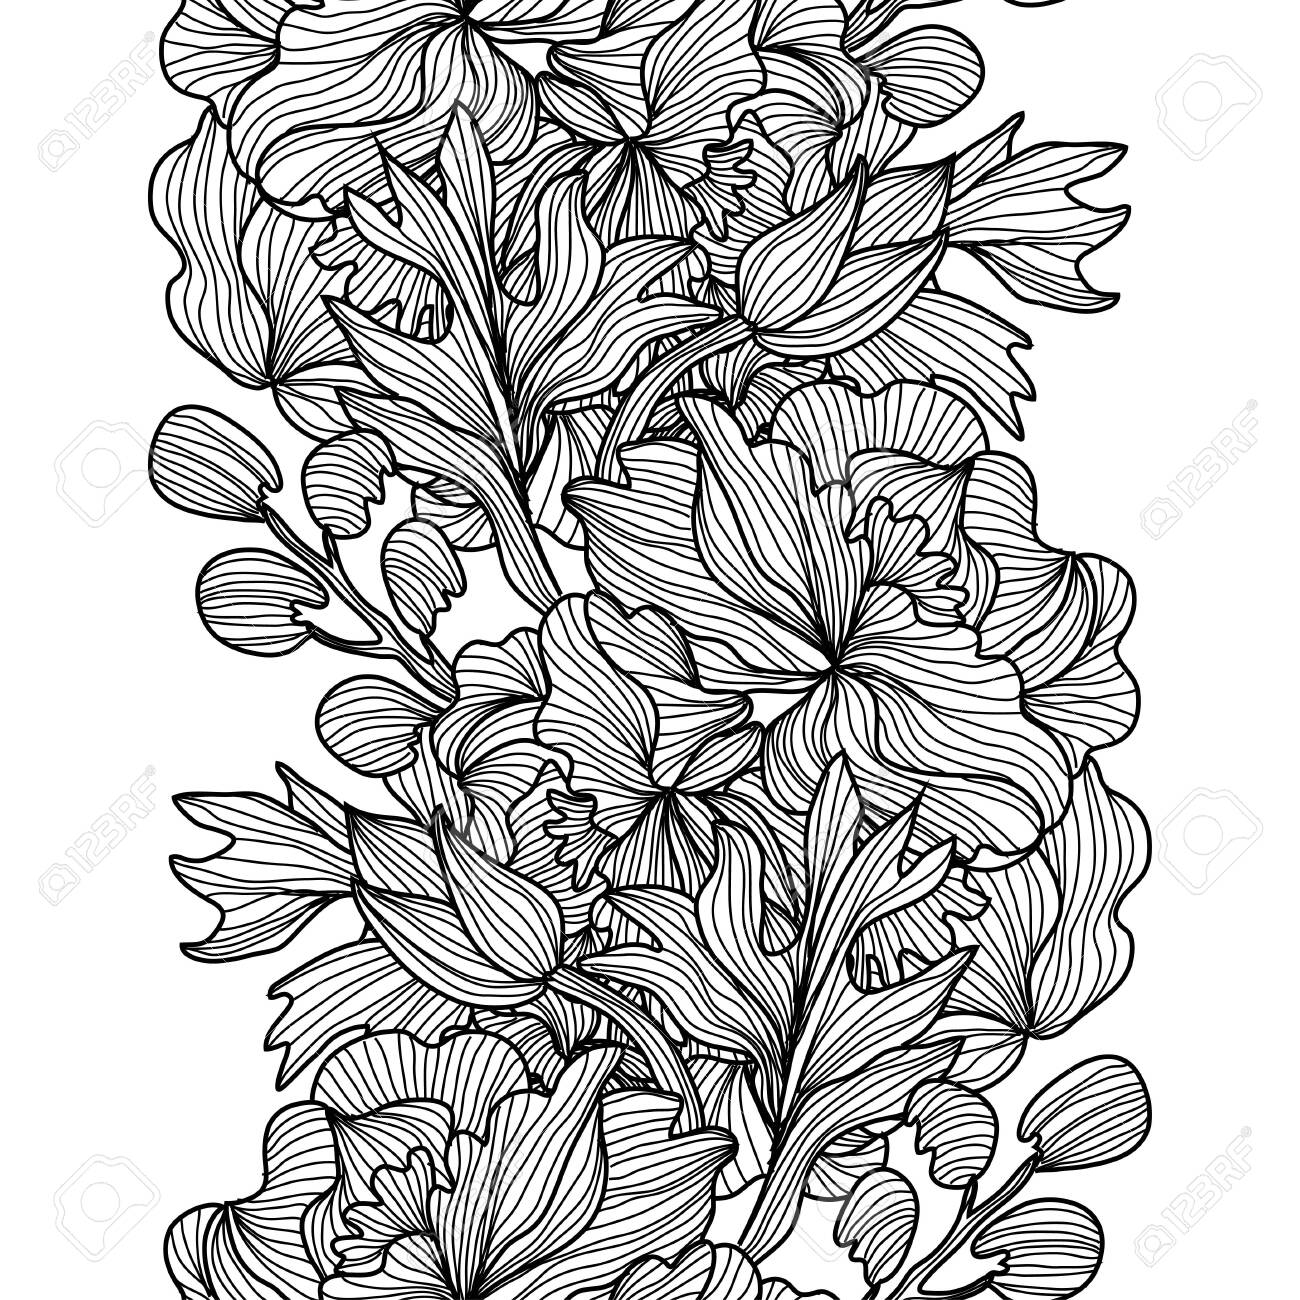 Elegant seamless pattern with peony flowers, design elements. Floral pattern for invitations, cards, print, gift wrap, manufacturing, textile, fabric, wallpapers - 129886230